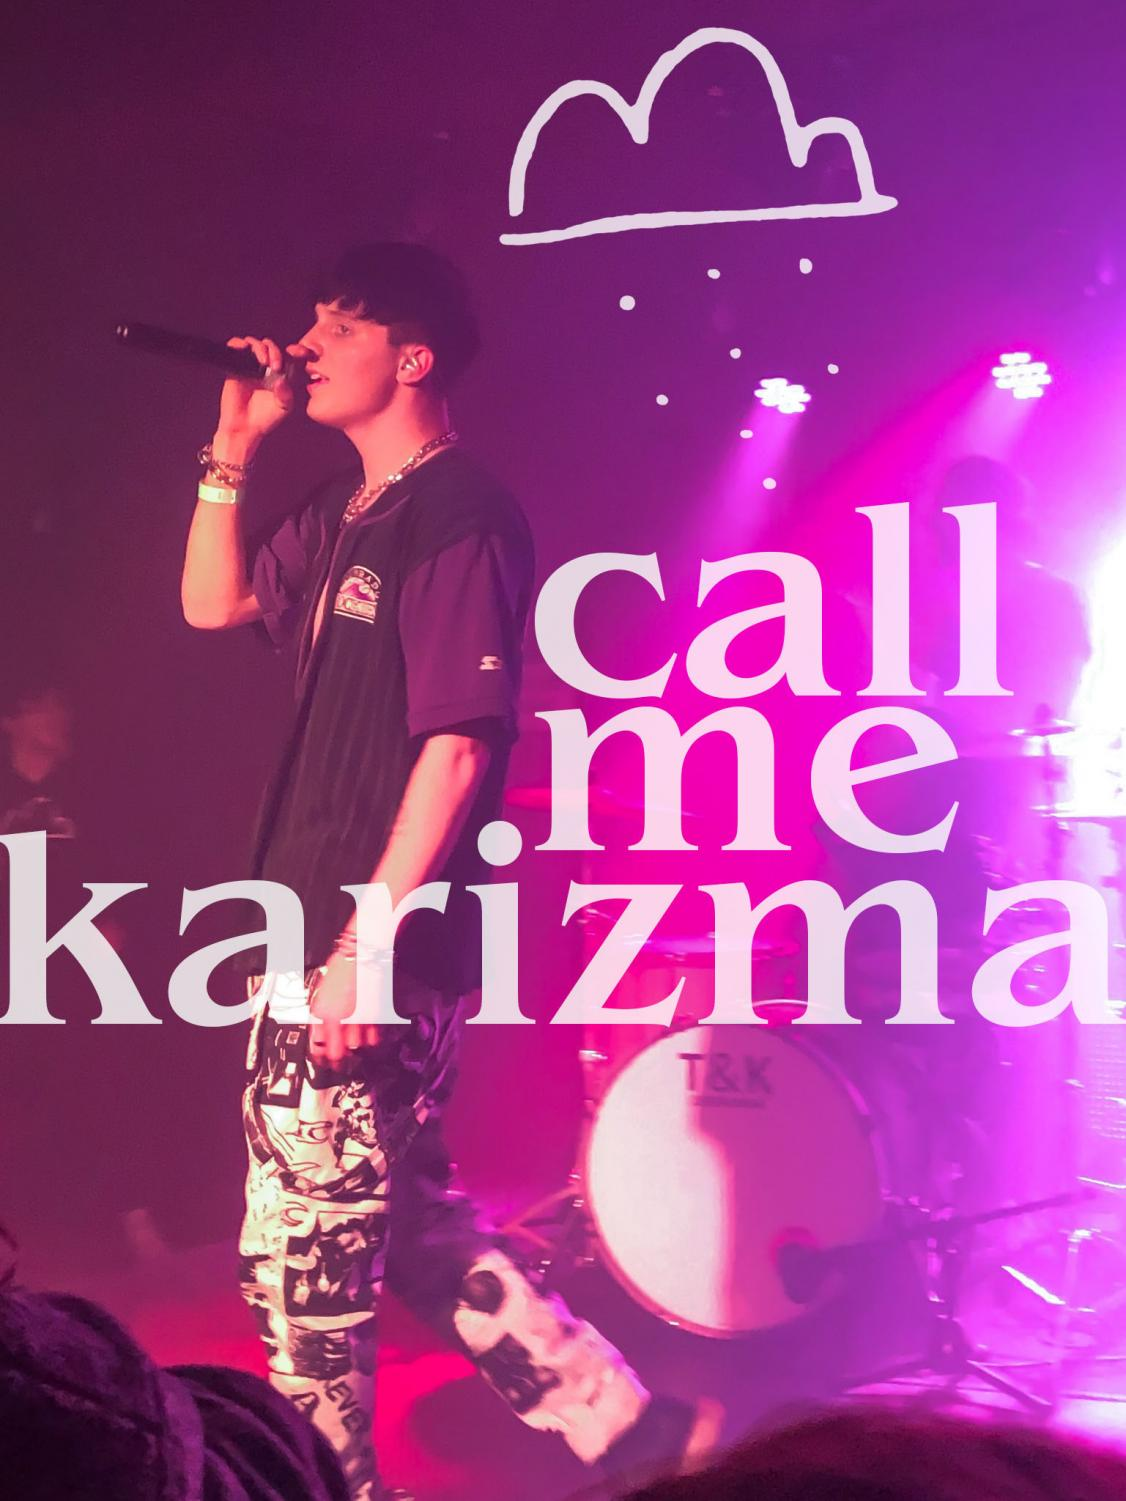 Call Me Karizma performs at the Larimer Lounge on March 10.